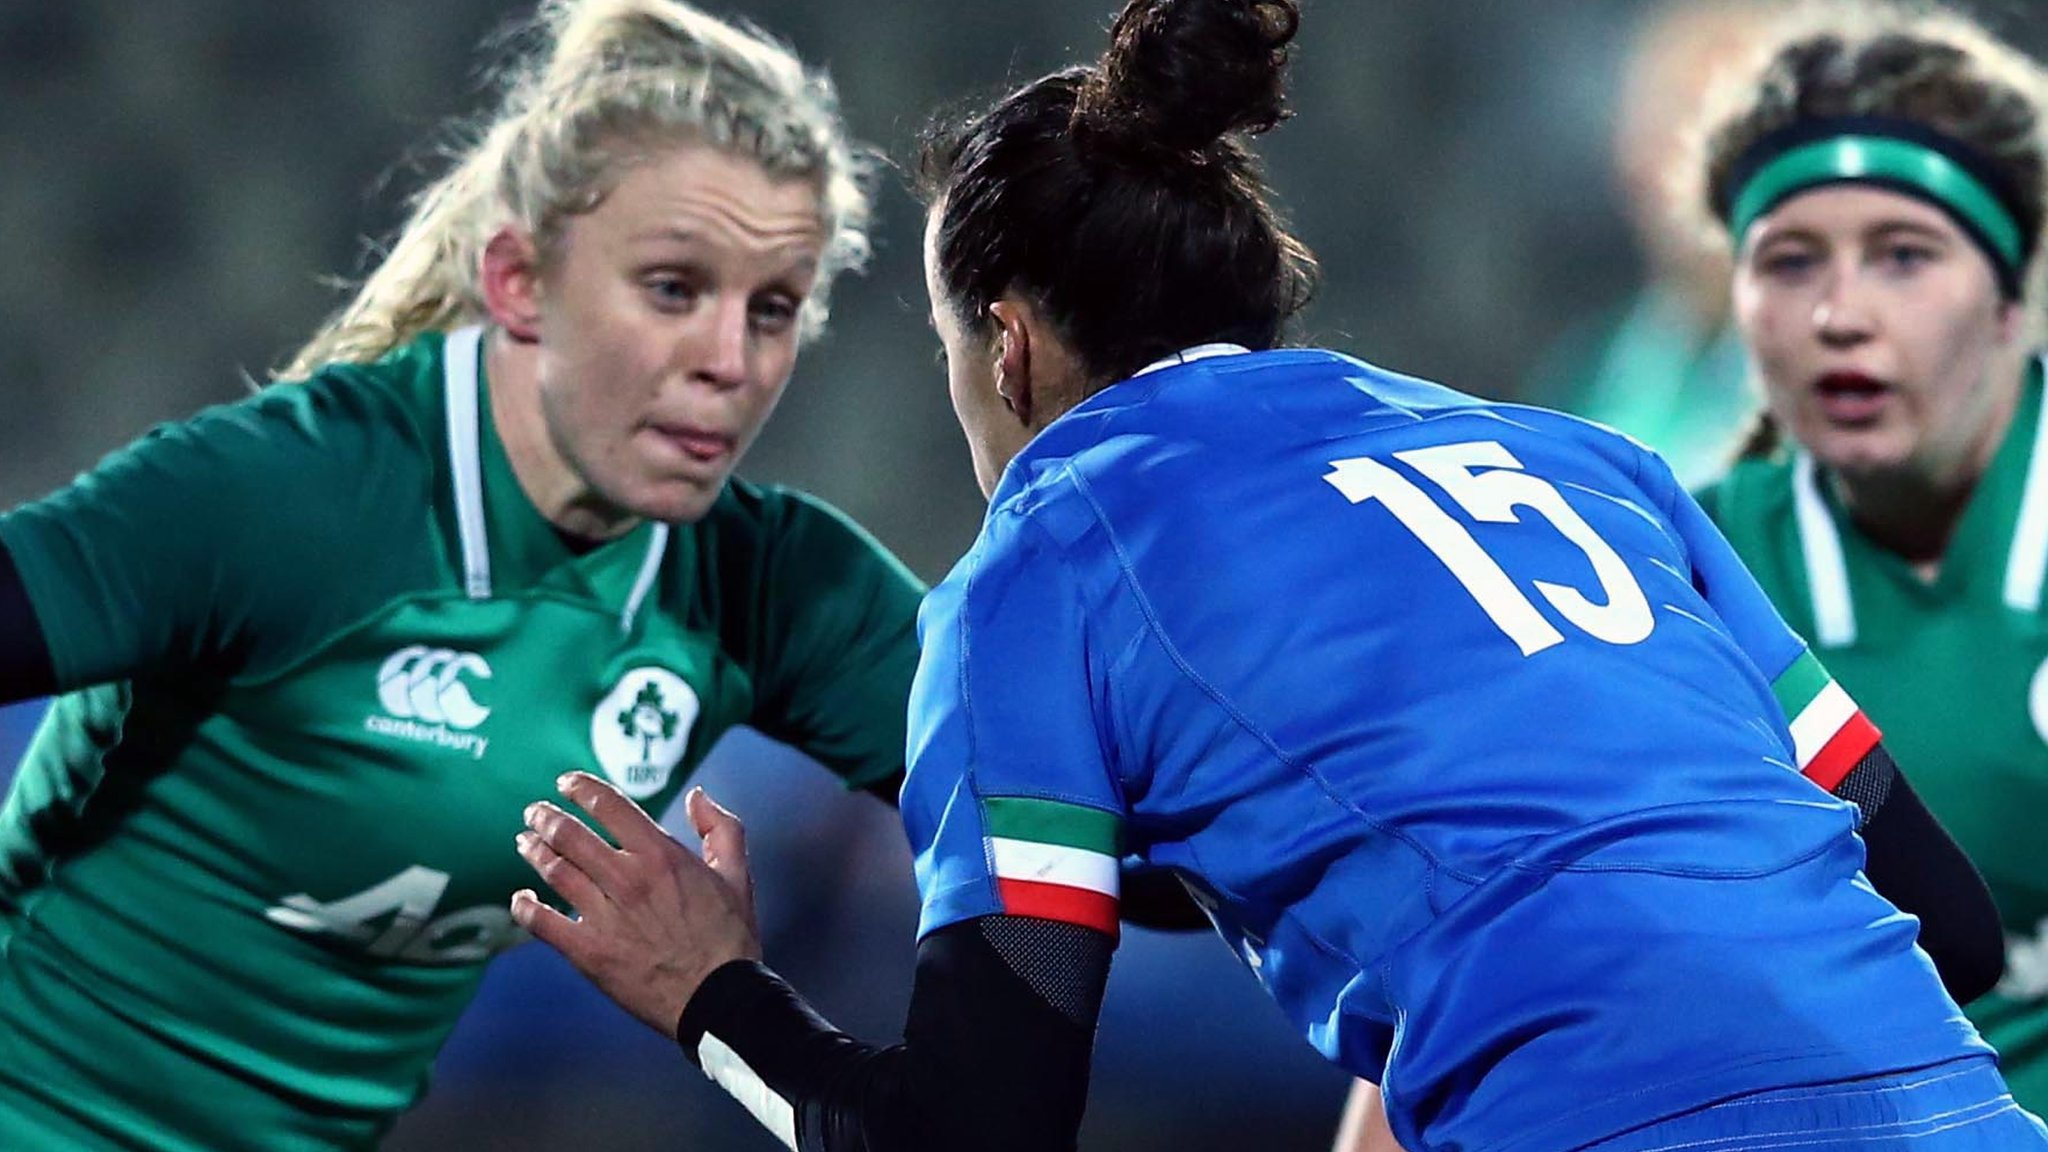 Italy women beat Ireland for first time with hard-fought victory